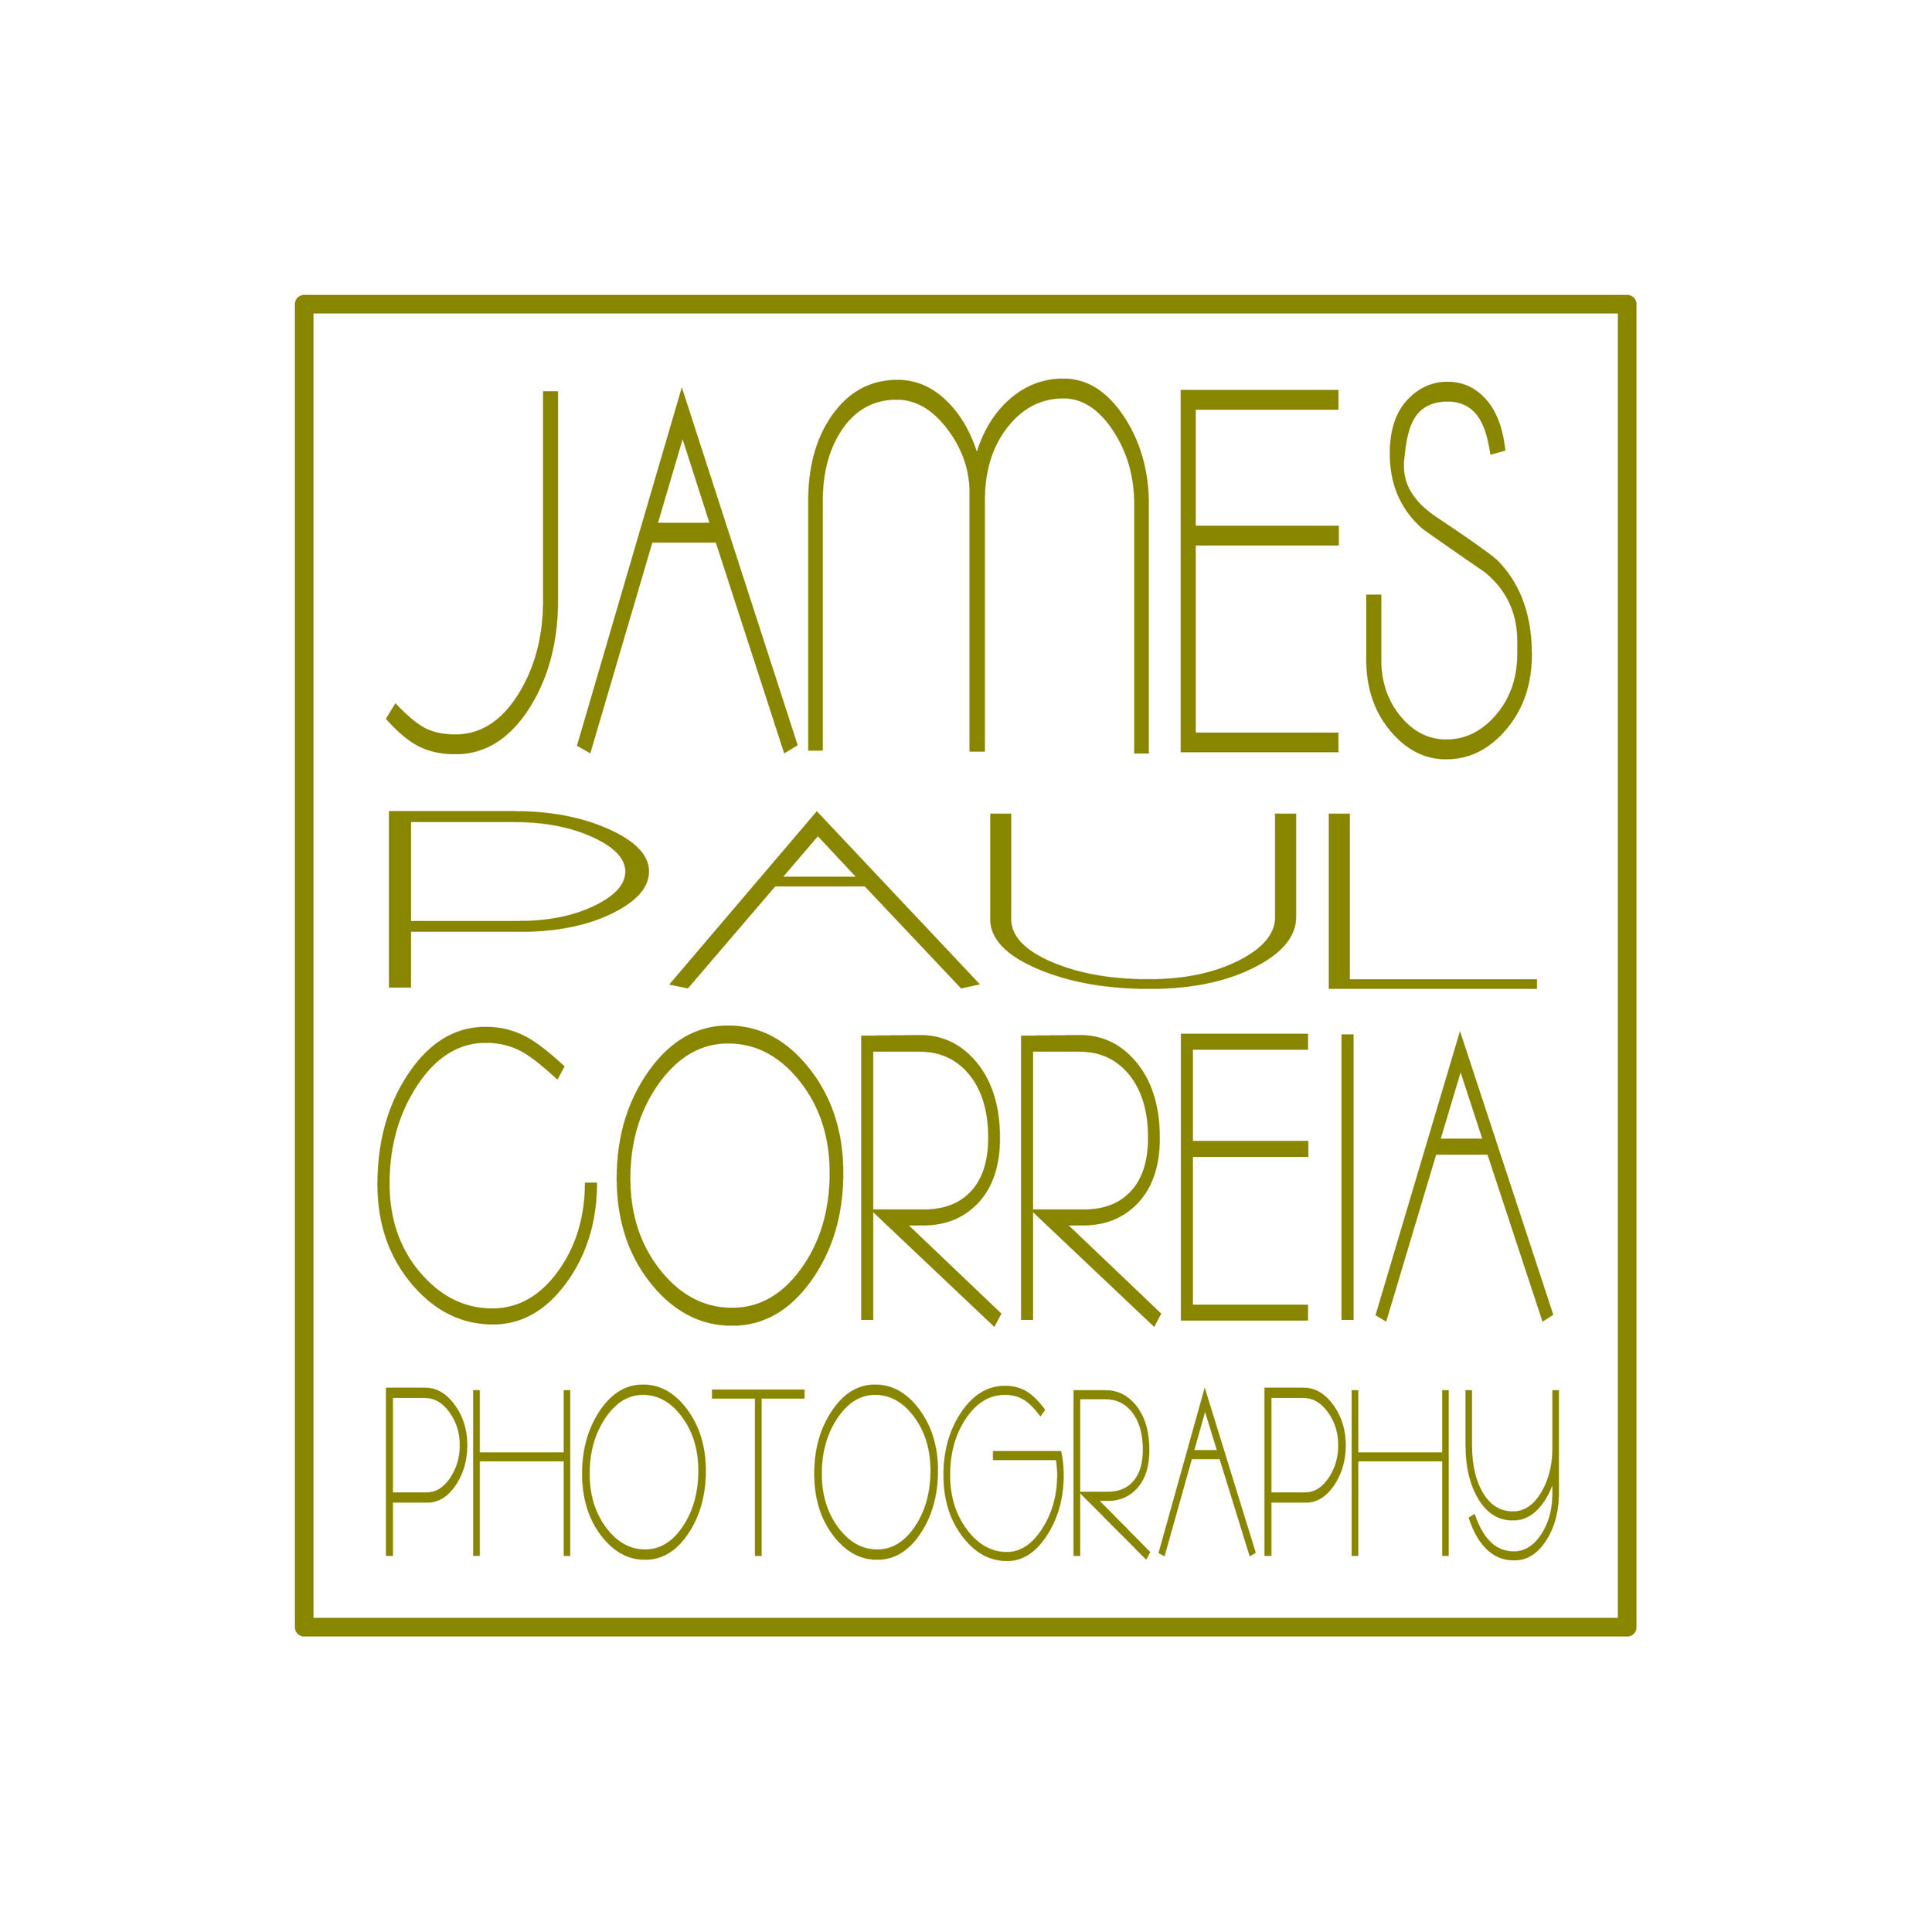 - International award winning photographer, James Correia, is a visual storyteller who thrives at capturing powerful emotions and genuine moments with a creative perspective.514.516.4712info@jamespaulcorreia.comwww.jamespaulcorreia.com